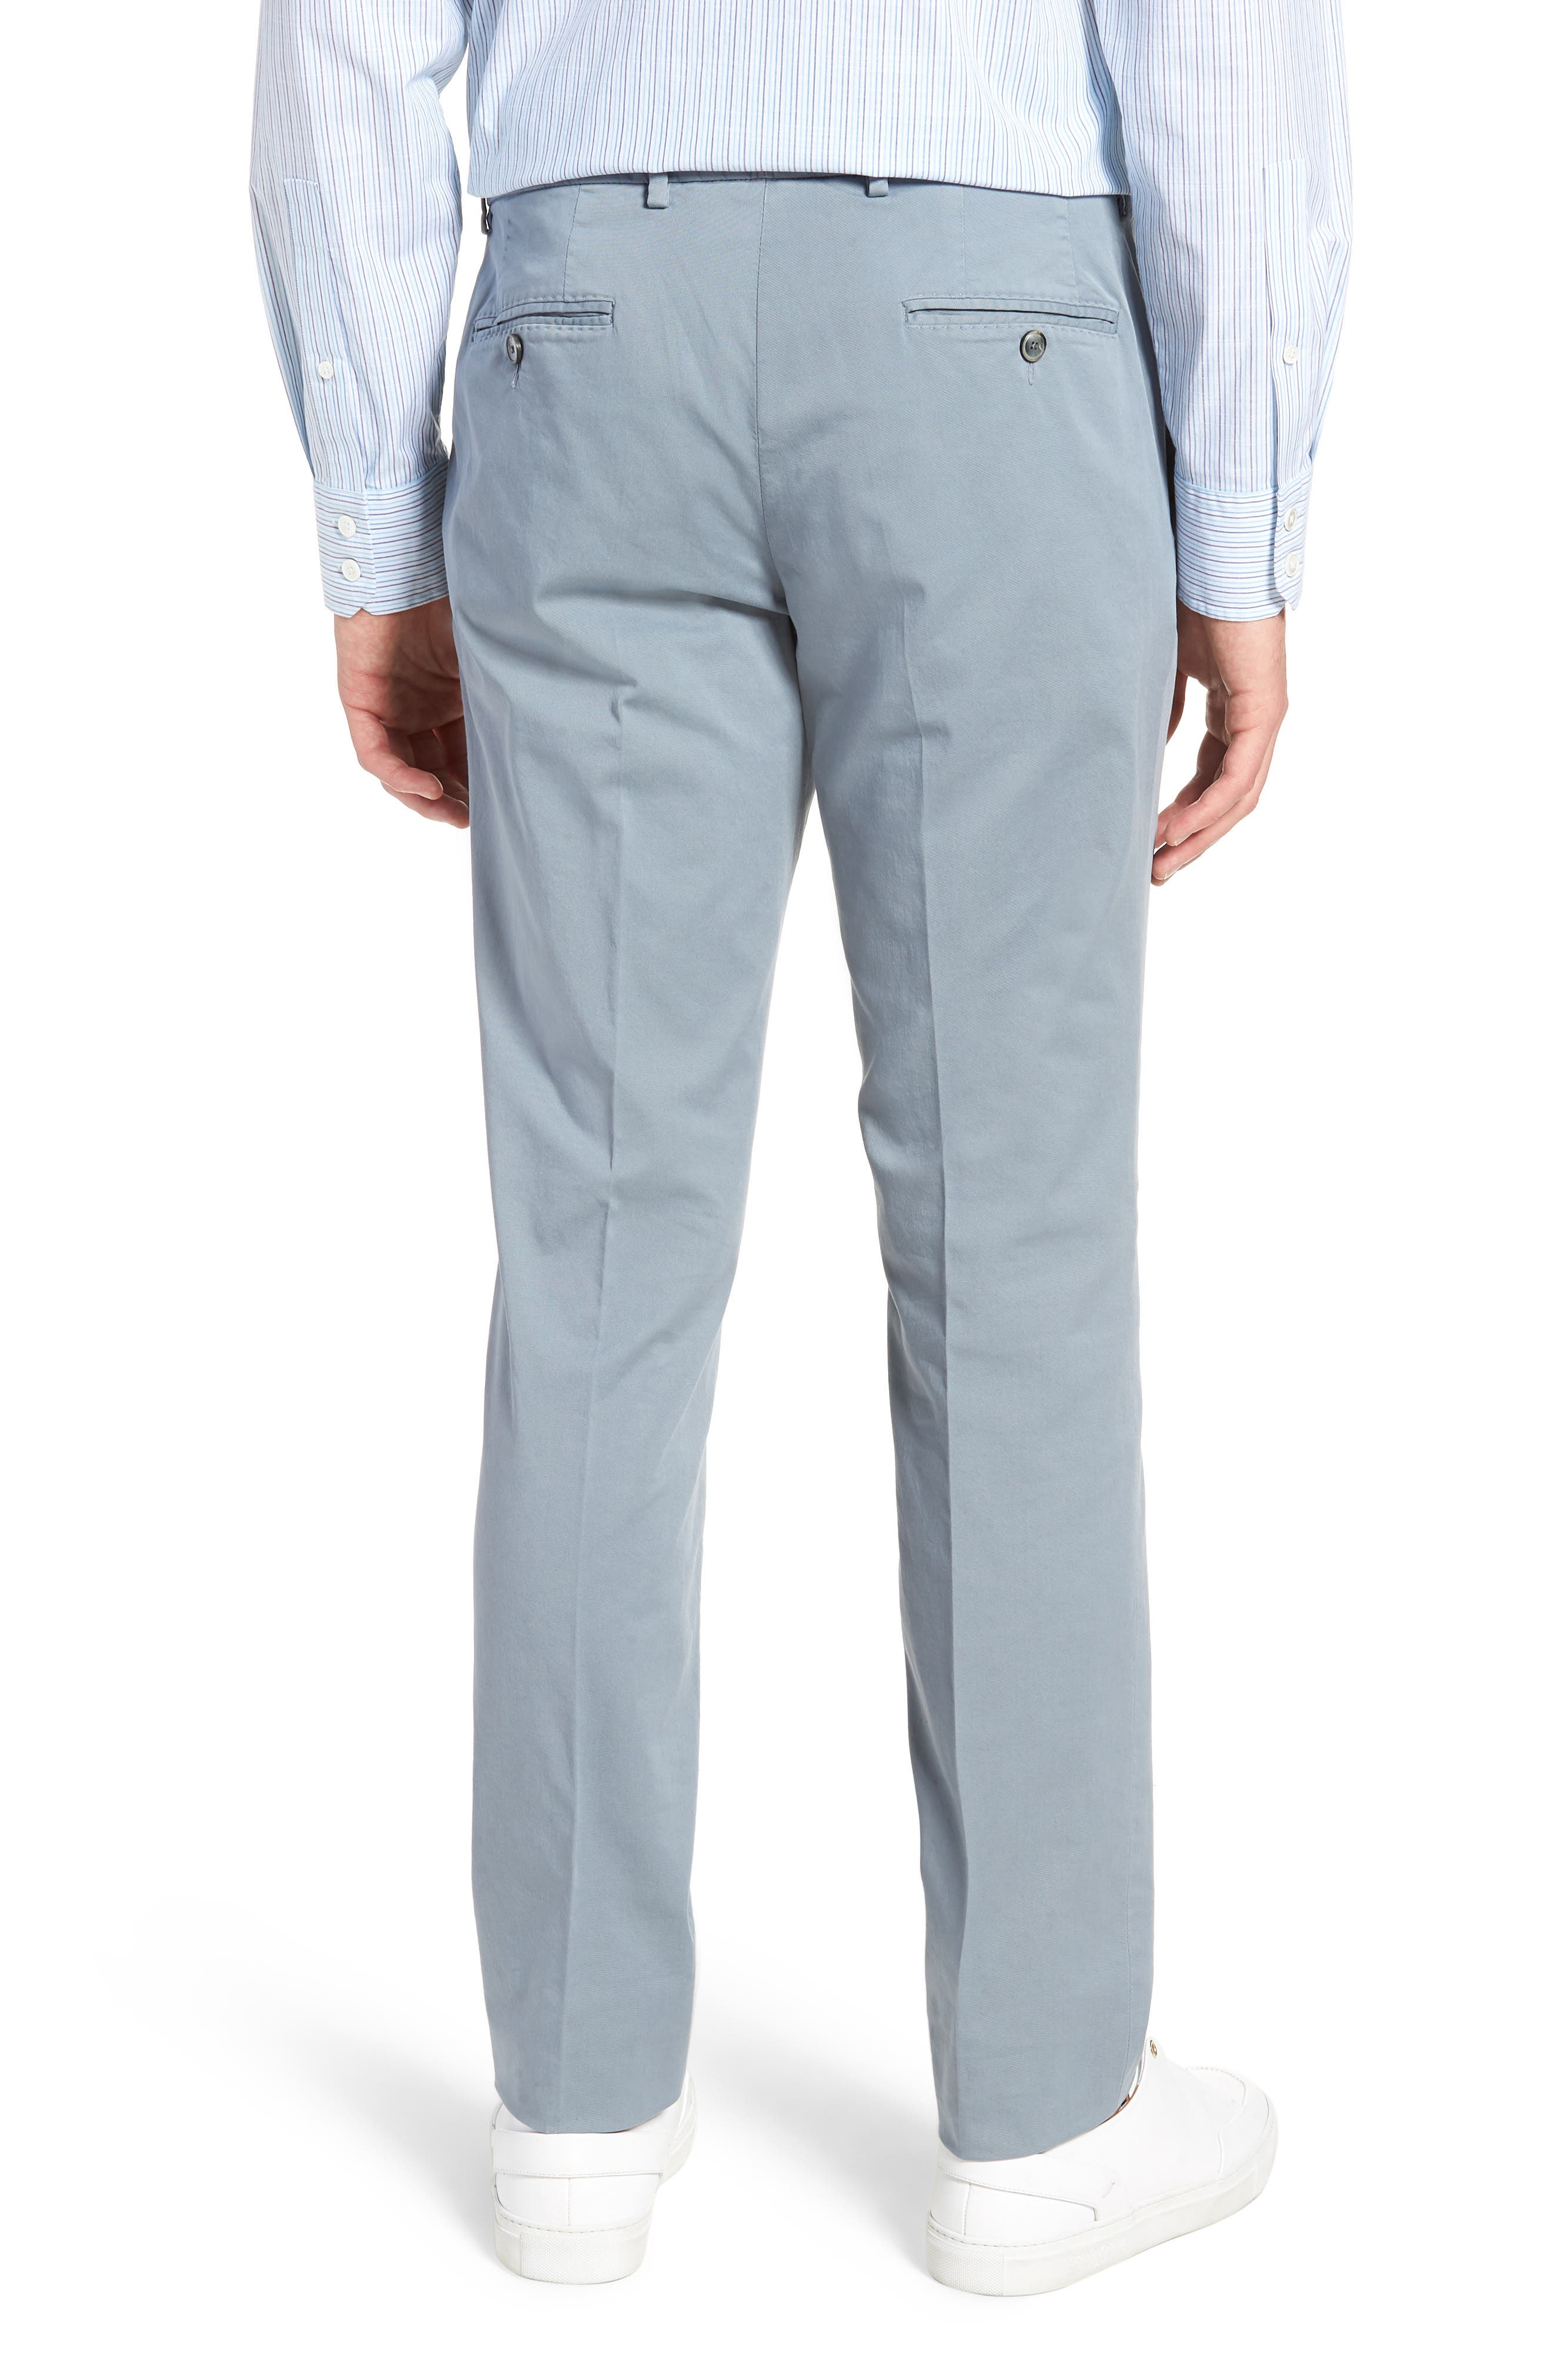 Barlow-D Flat Front Stretch Solid Cotton Trousers,                             Alternate thumbnail 2, color,                             Blue